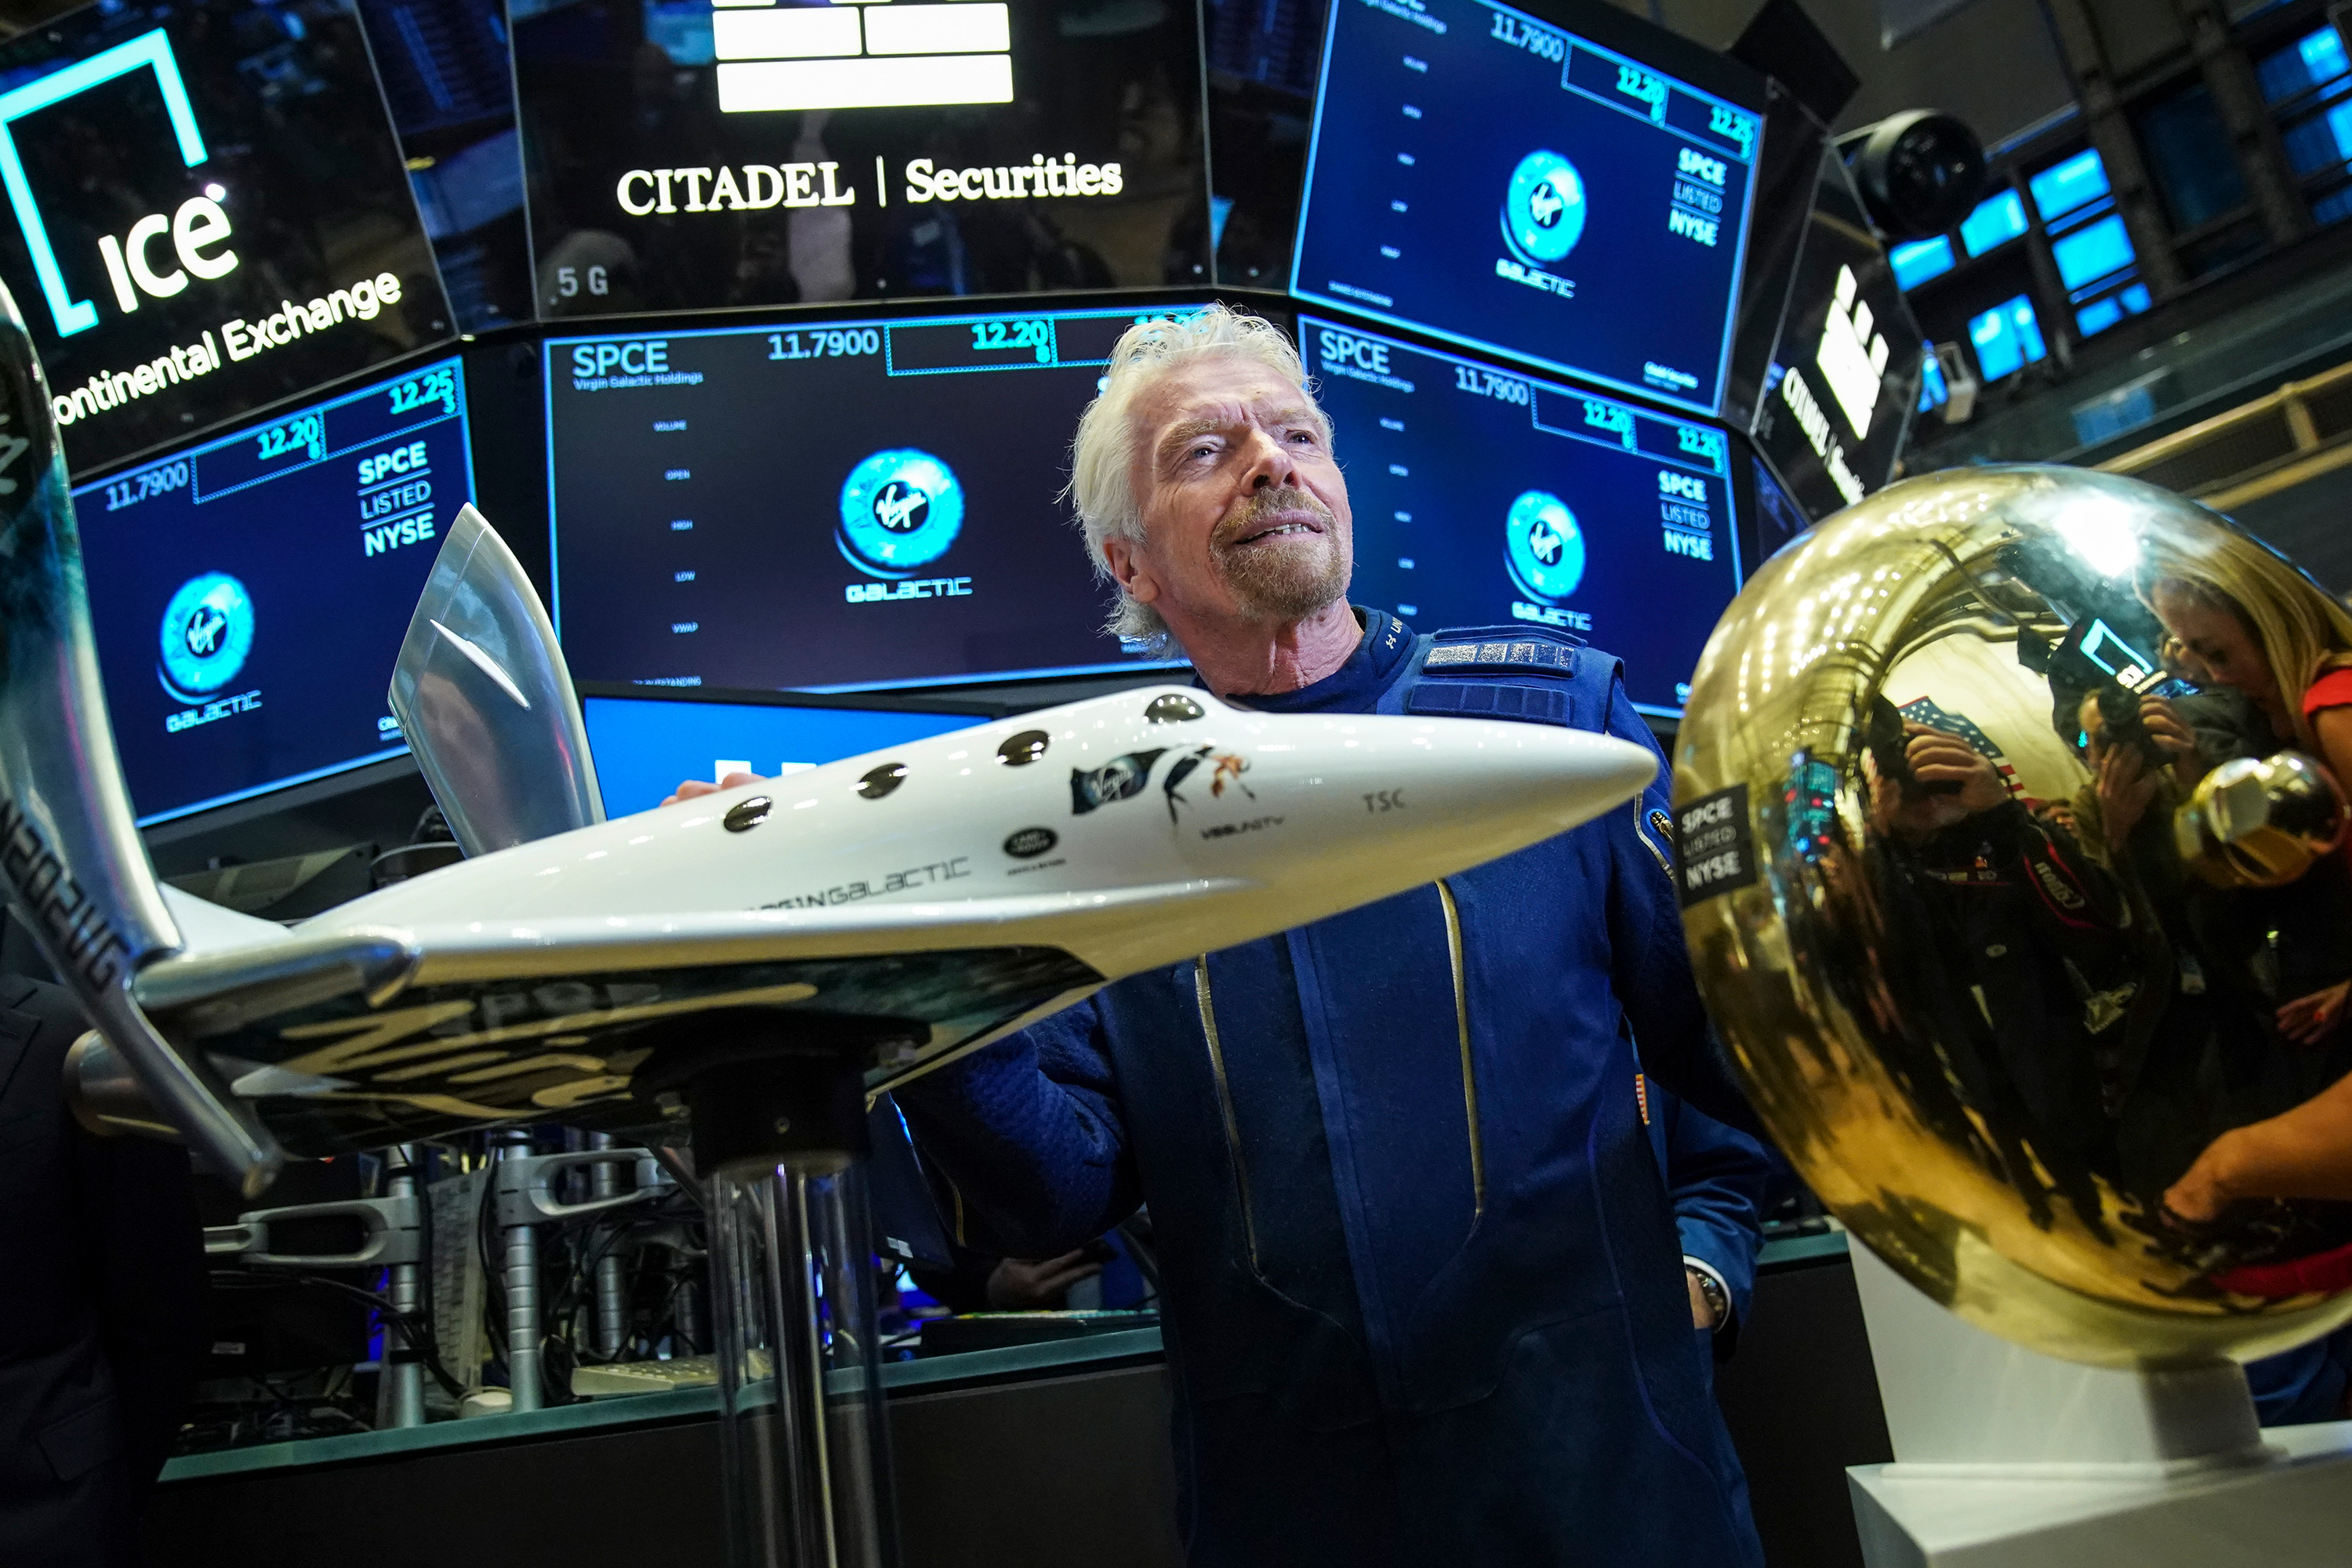 Virgin Galactic stock soars following SpaceX success